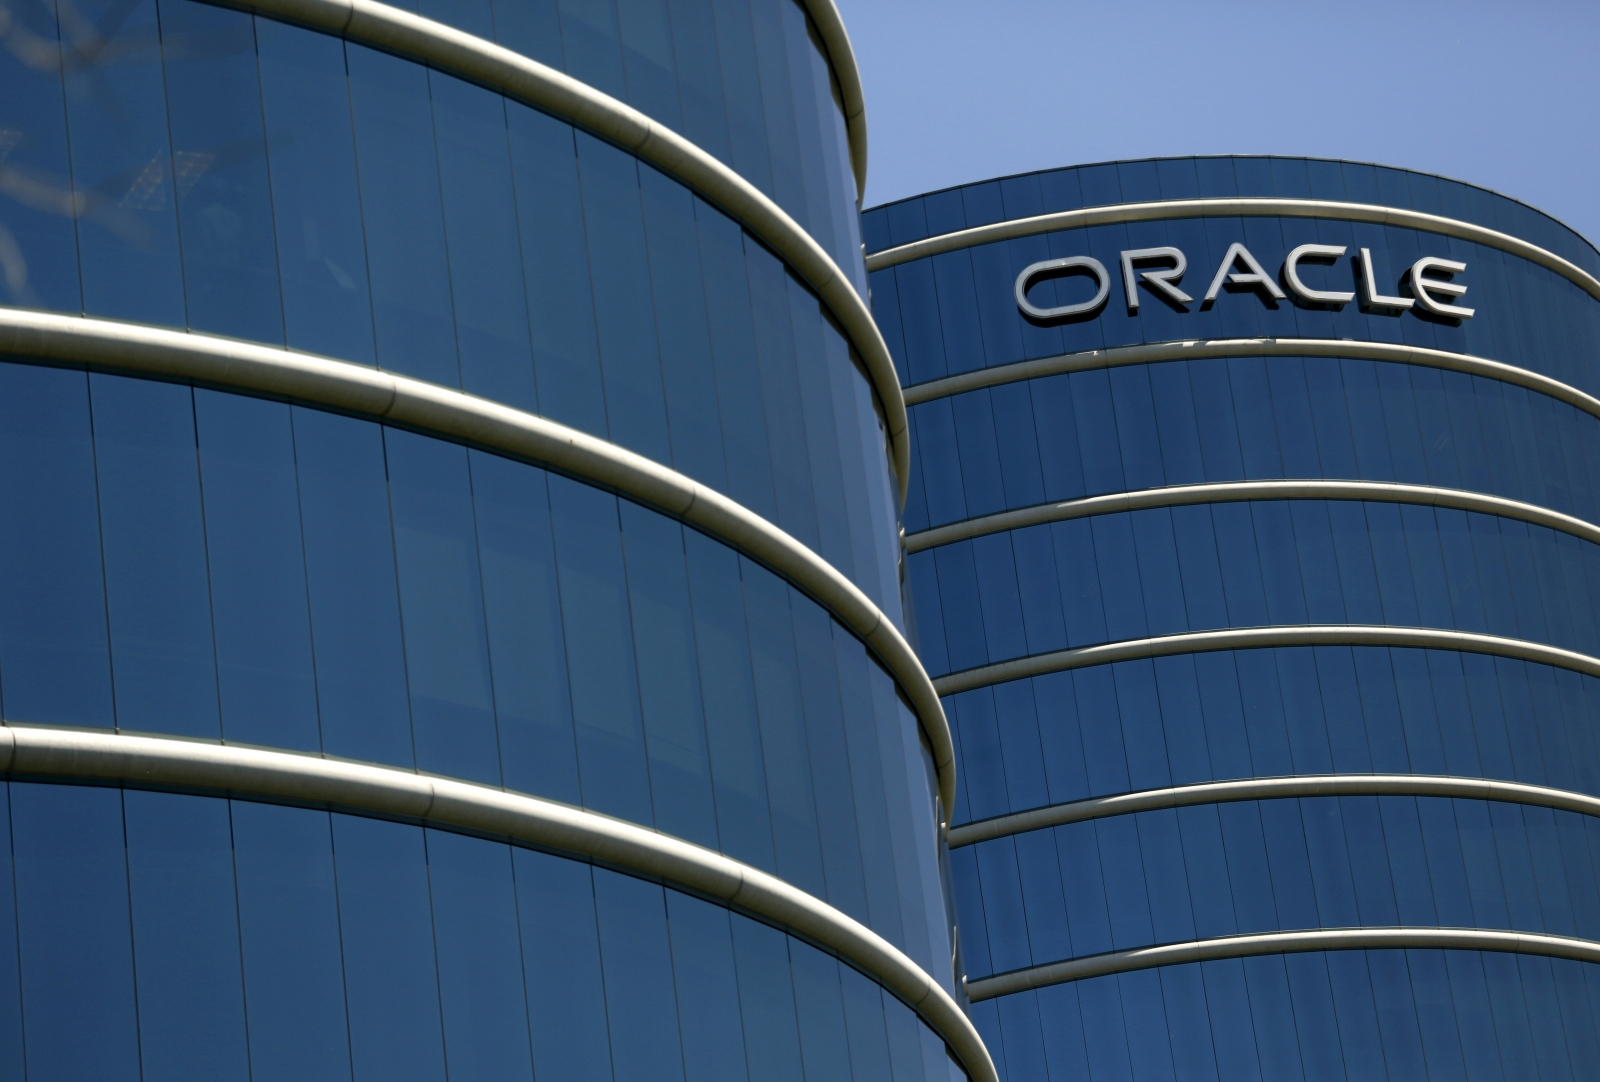 Oracle ordered to pay $3bn to Hewlett Packard Enterprise over Itanium chip lawsuit